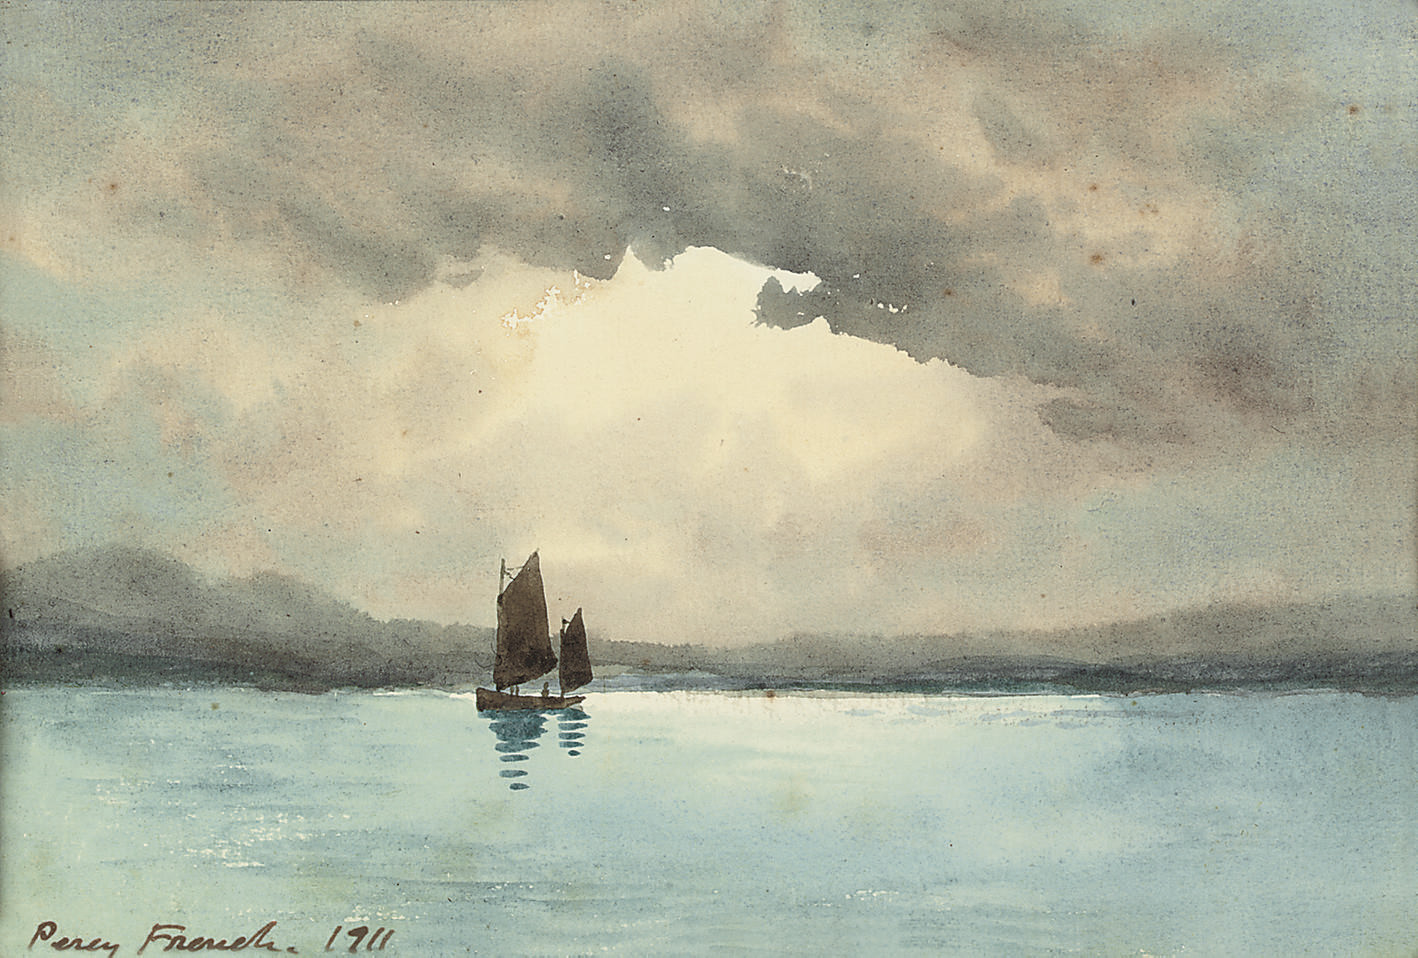 A sailing boat on a lake